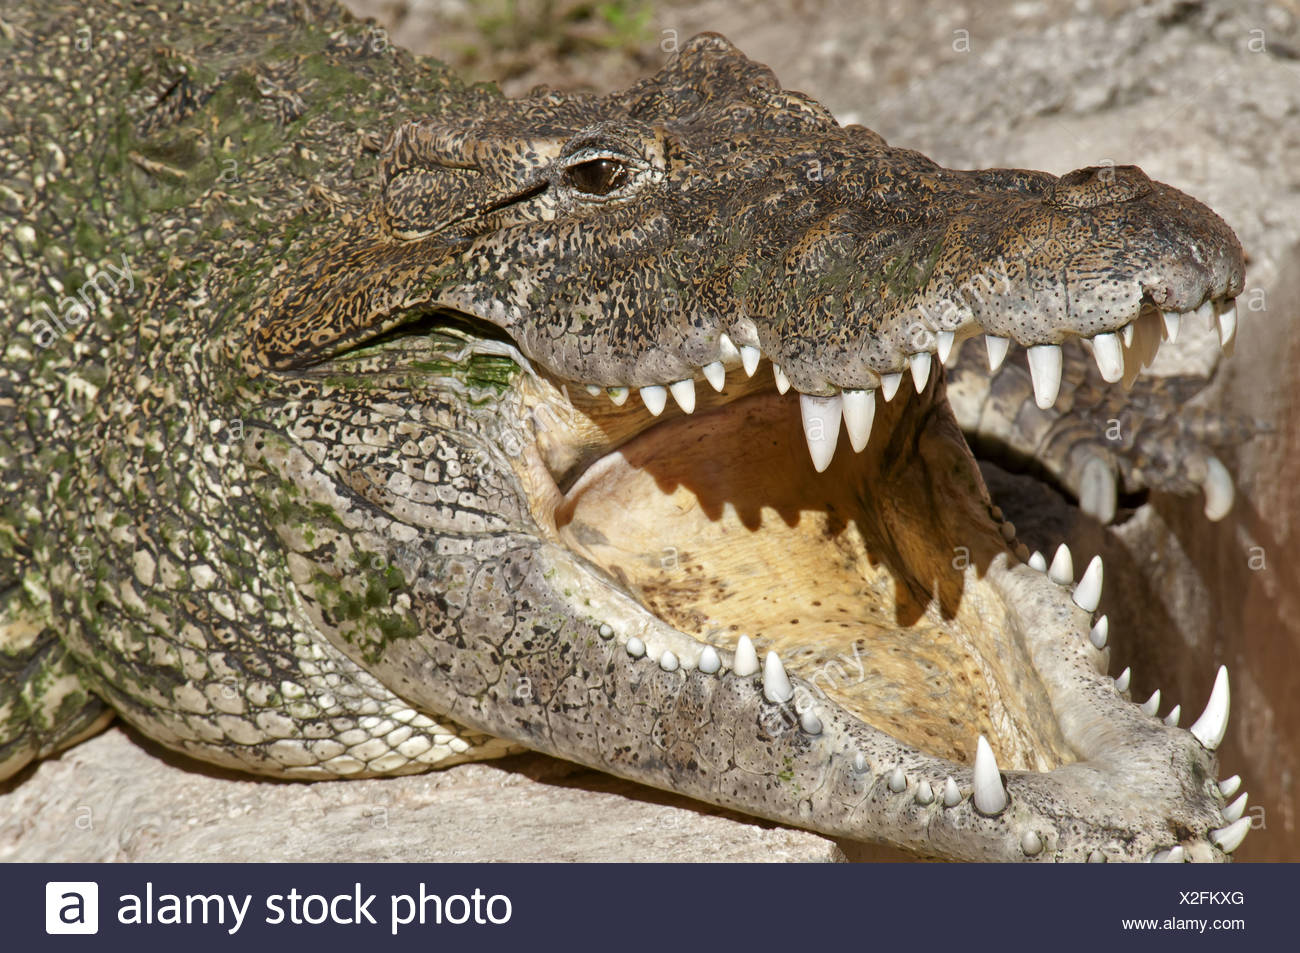 Cuban Crocodile (Crocodylus rhombifer) adult, with mouth open, close-up of head (captive) Stock Photo